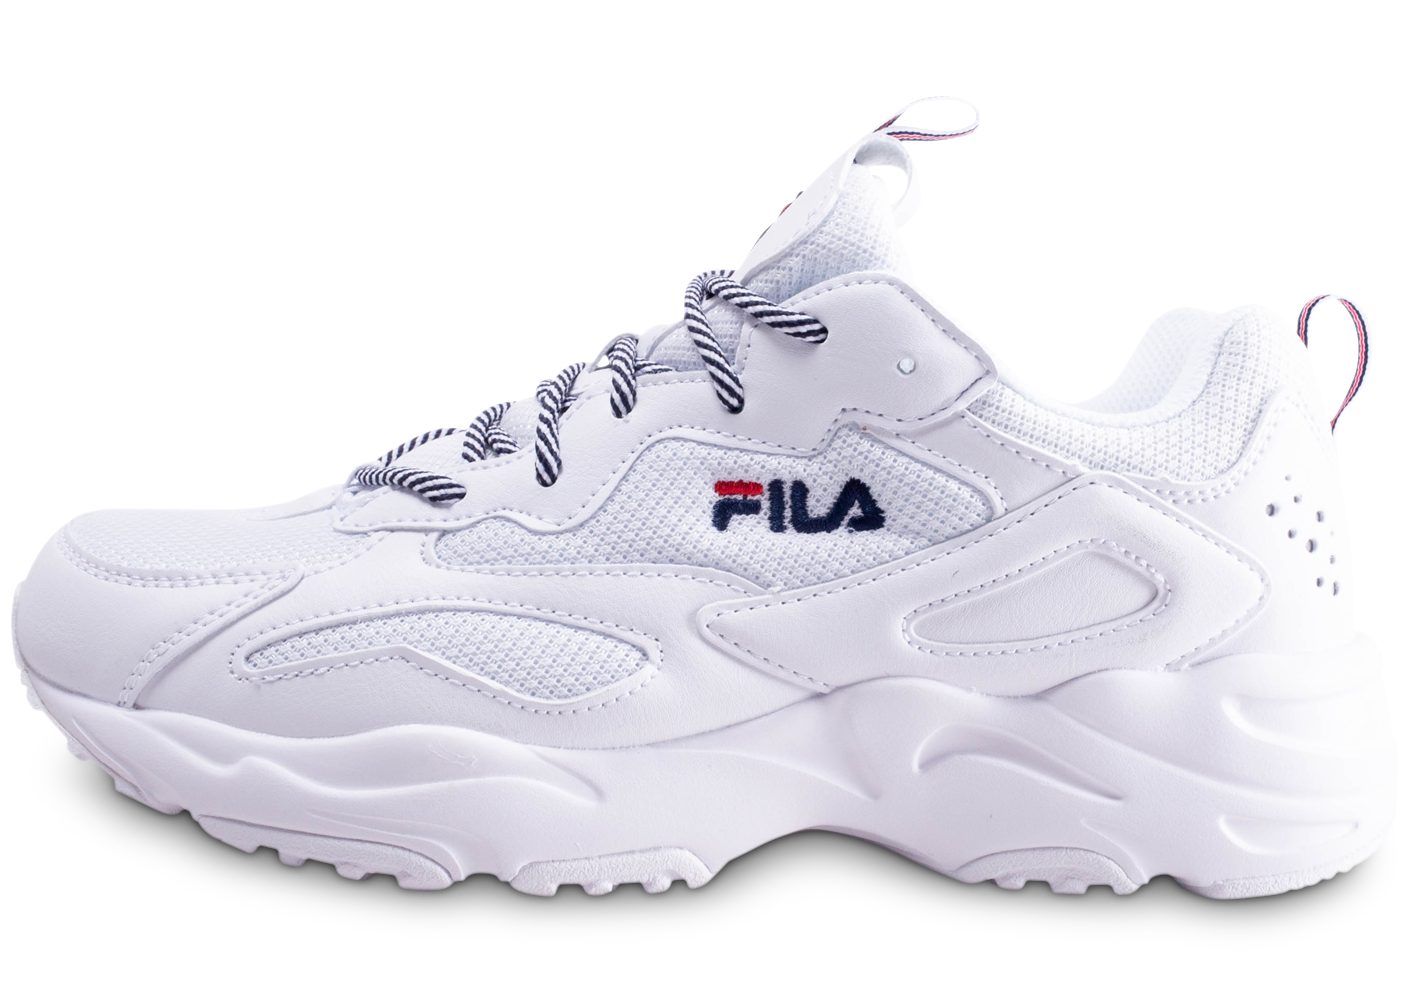 Fila homme ray tracer blanc baskets